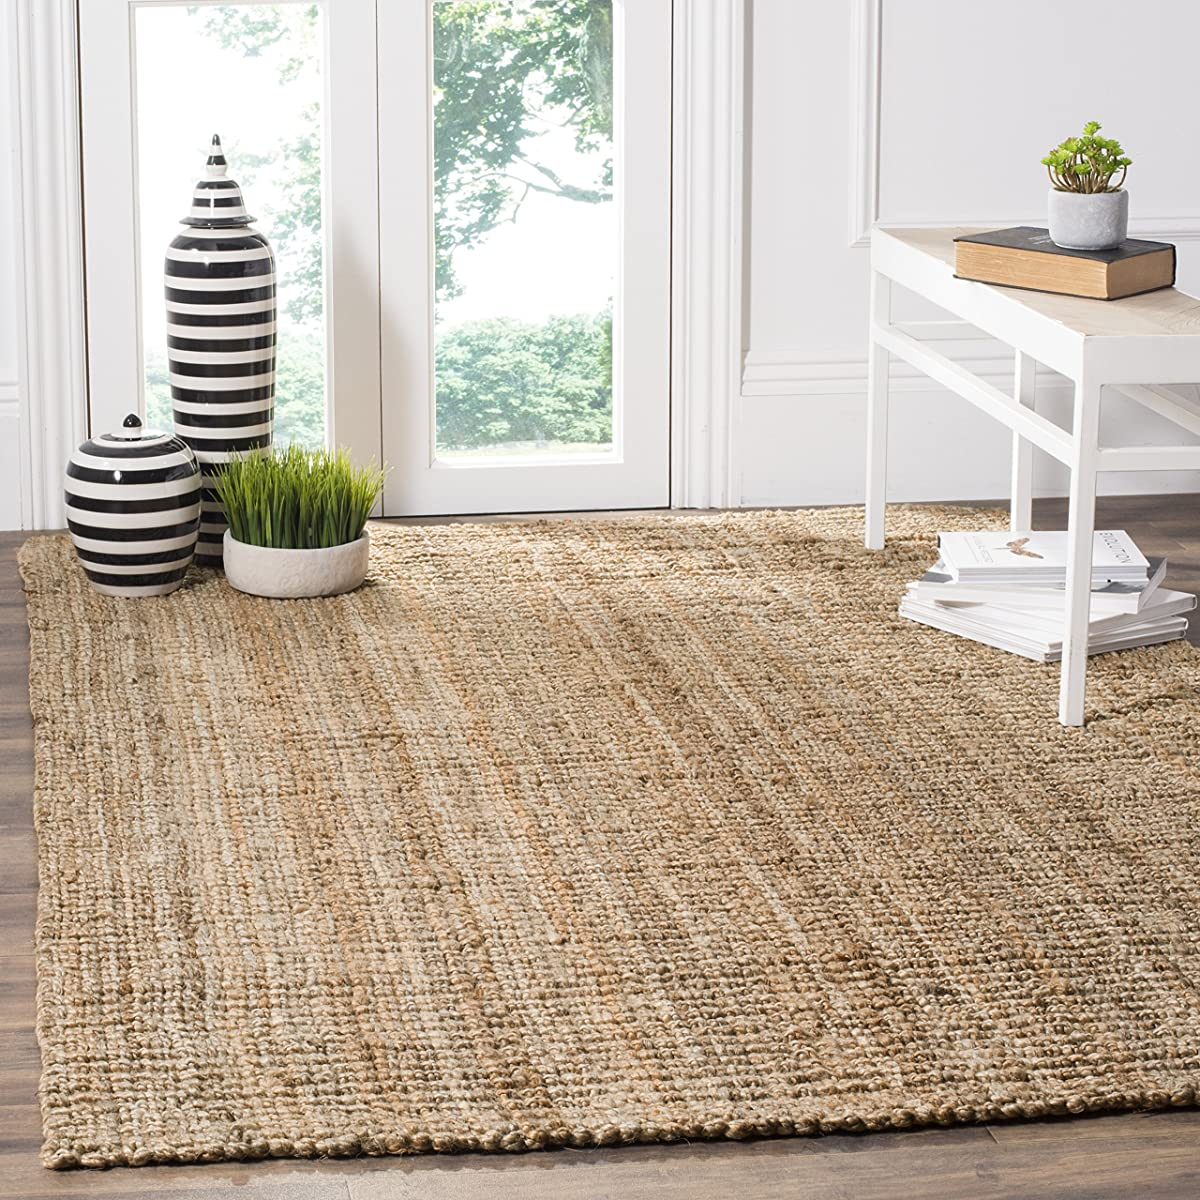 Home Goods Online Canada Safavieh Natural Fiber Collection Nf447a Hand Woven